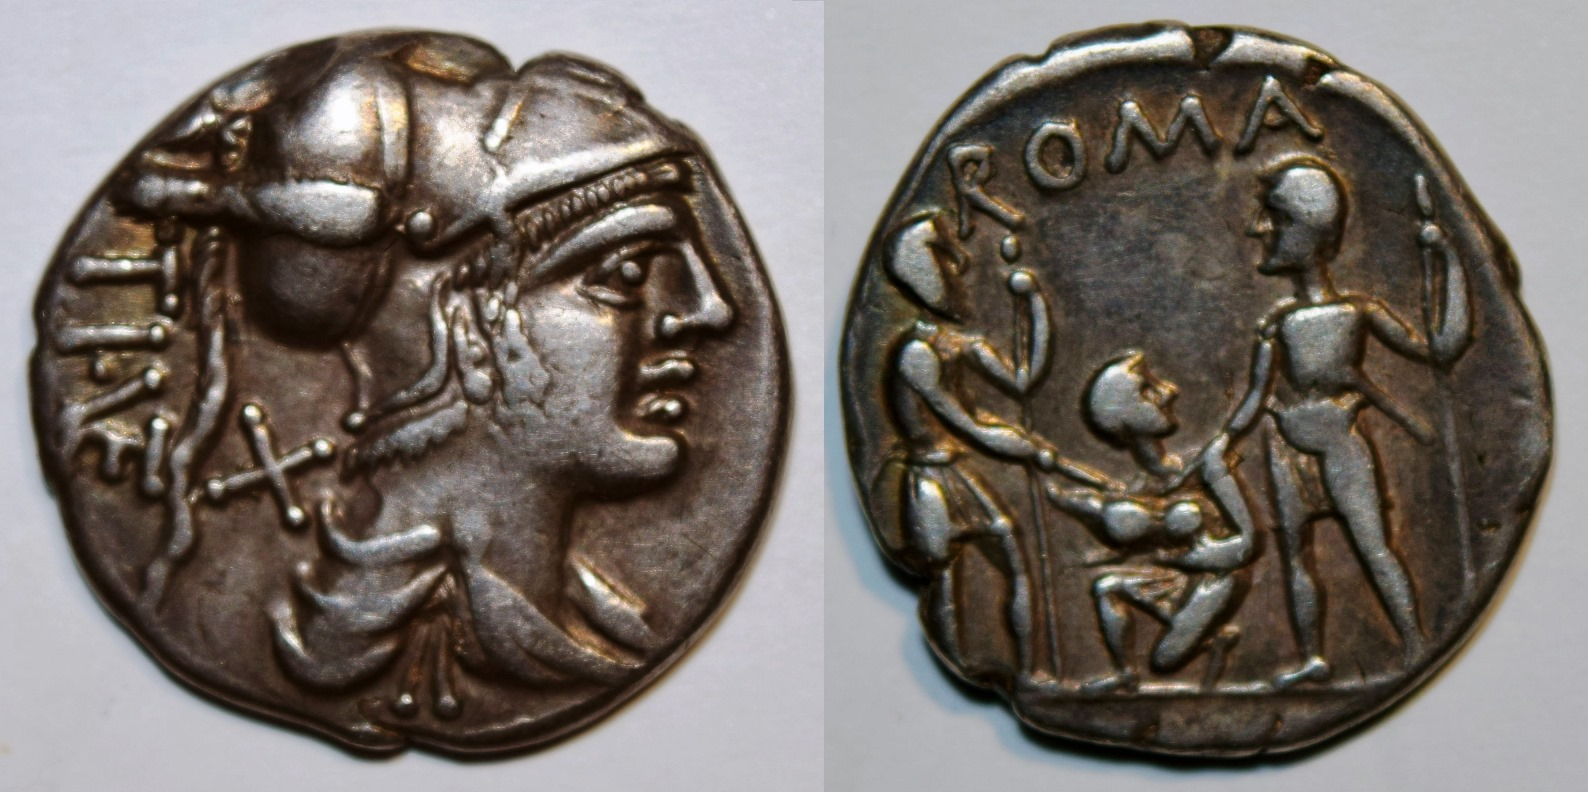 Denarius of Ti. Veturius showing head of Mars and soldiers swearing an oath.